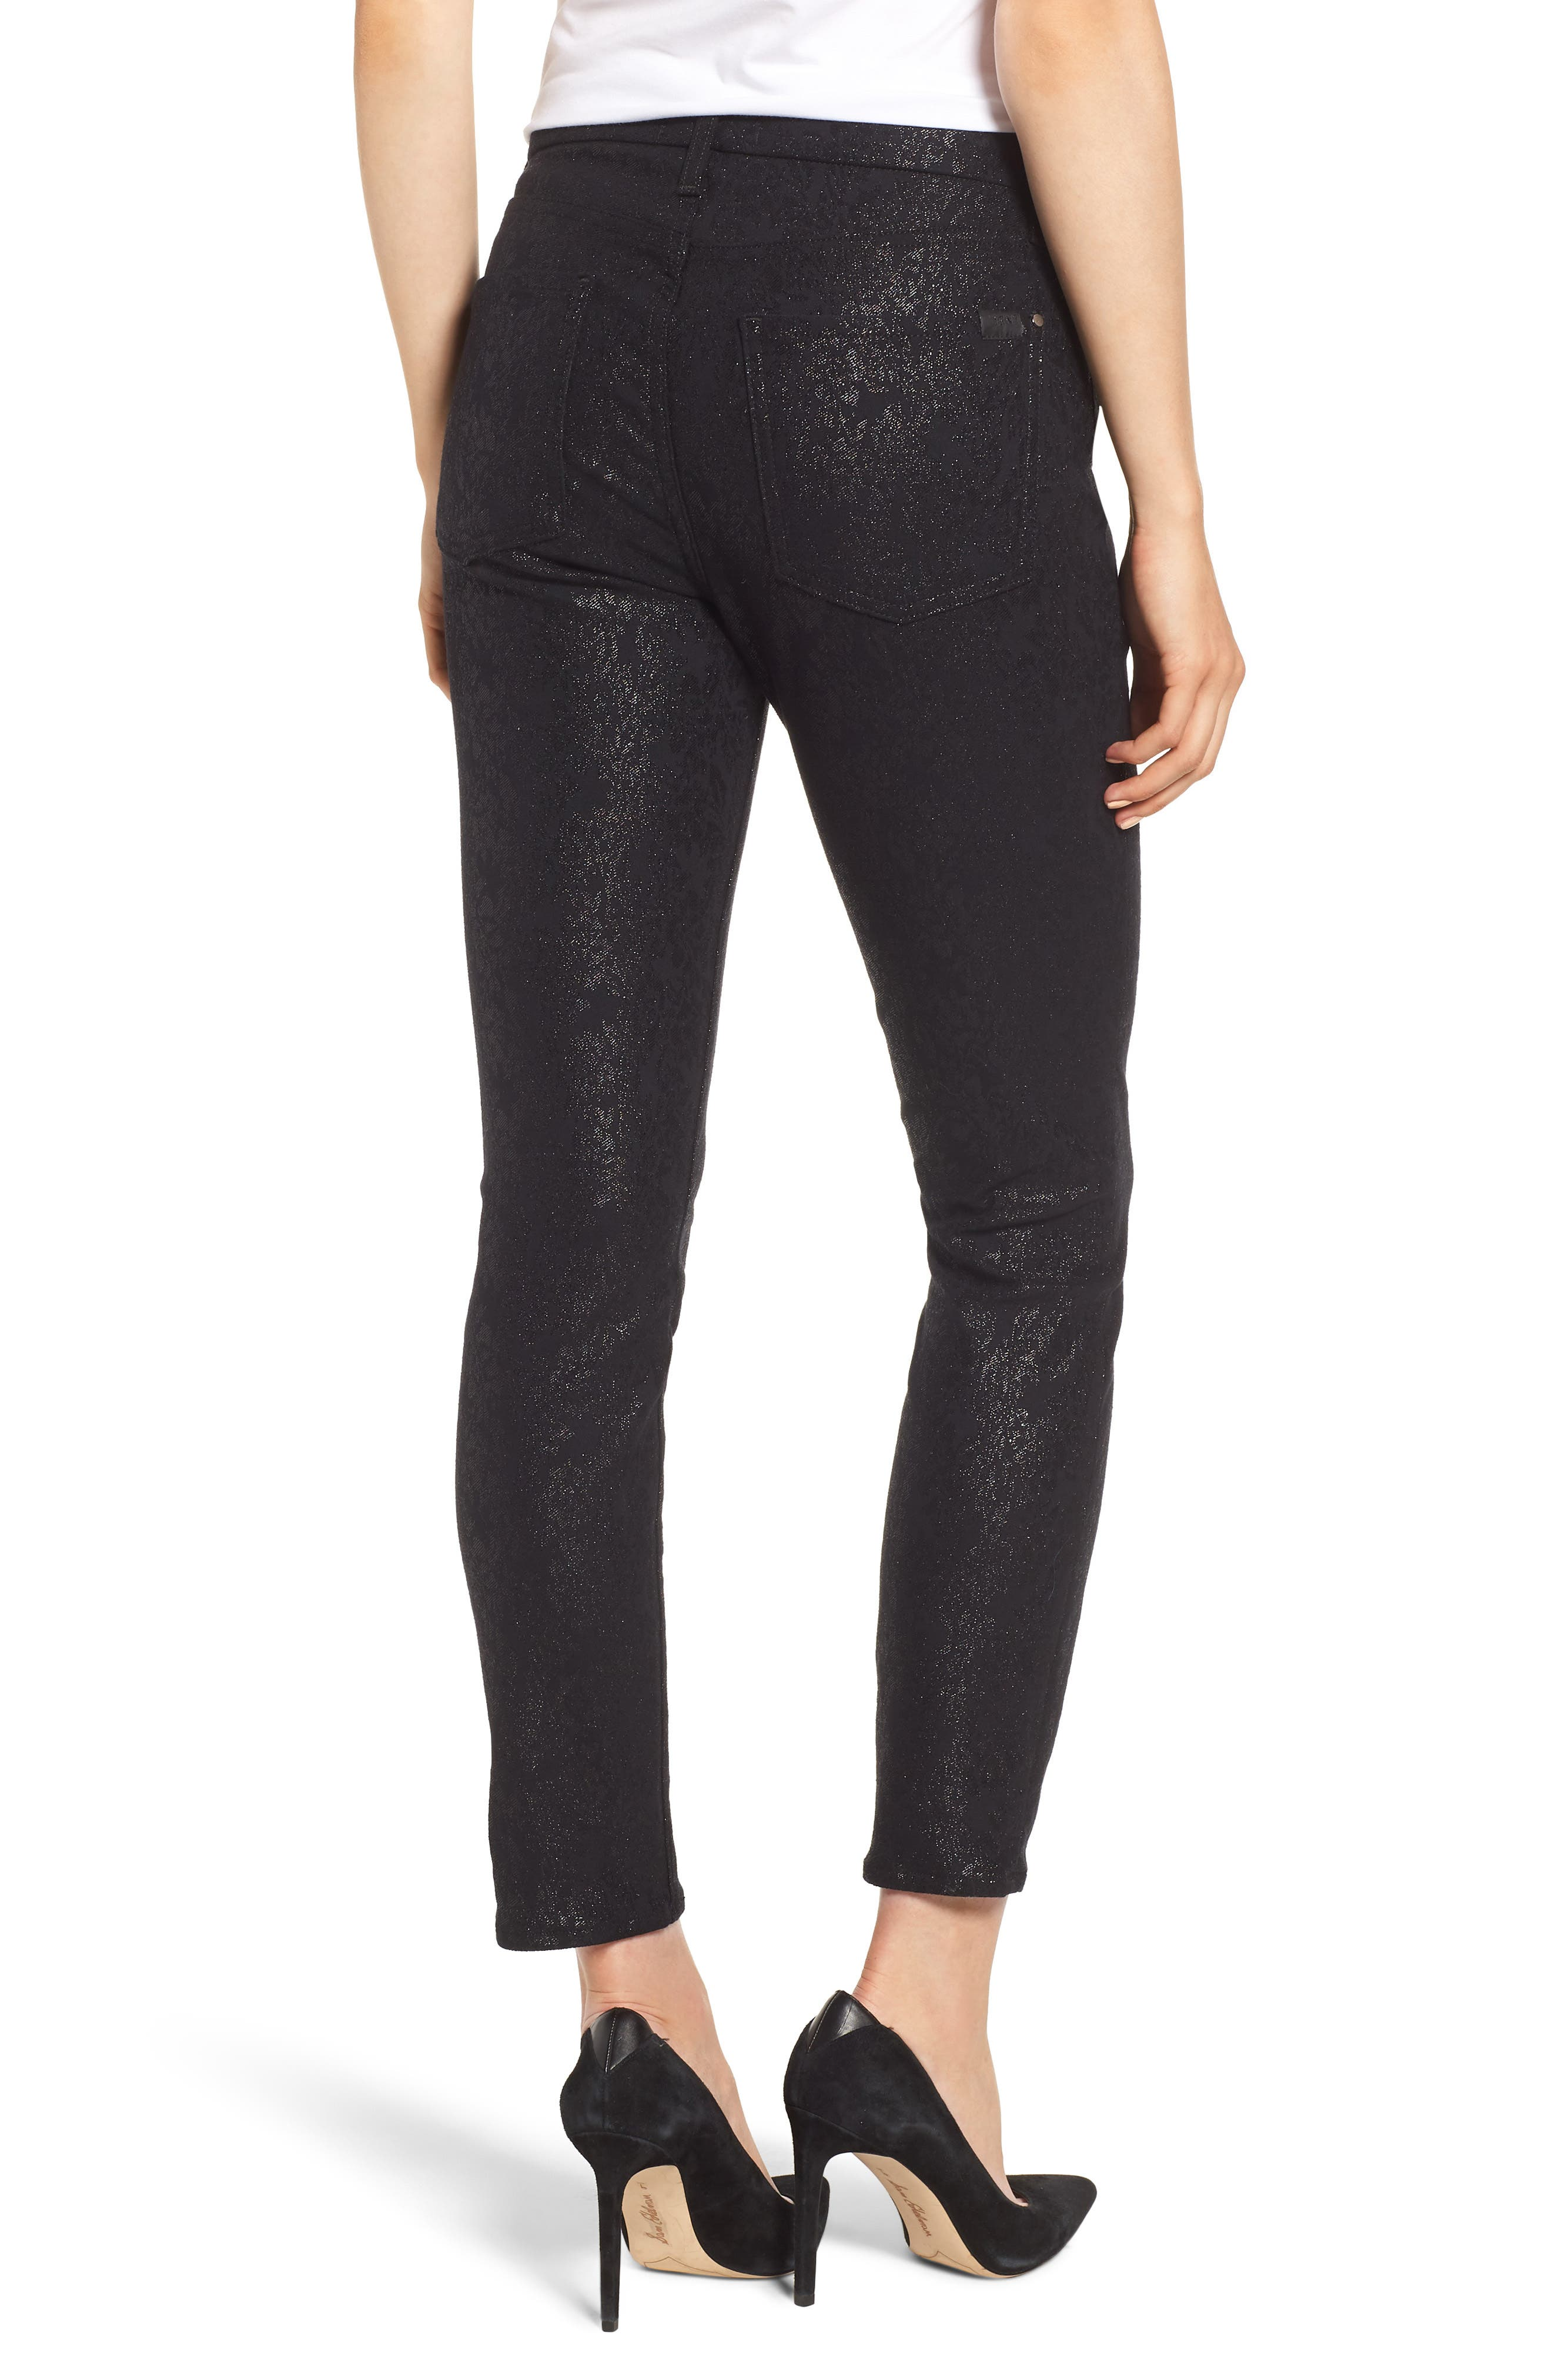 JEN7 BY 7 FOR ALL MANKIND, Floral Metallic Ankle Skinny Jeans, Alternate thumbnail 2, color, BLACK